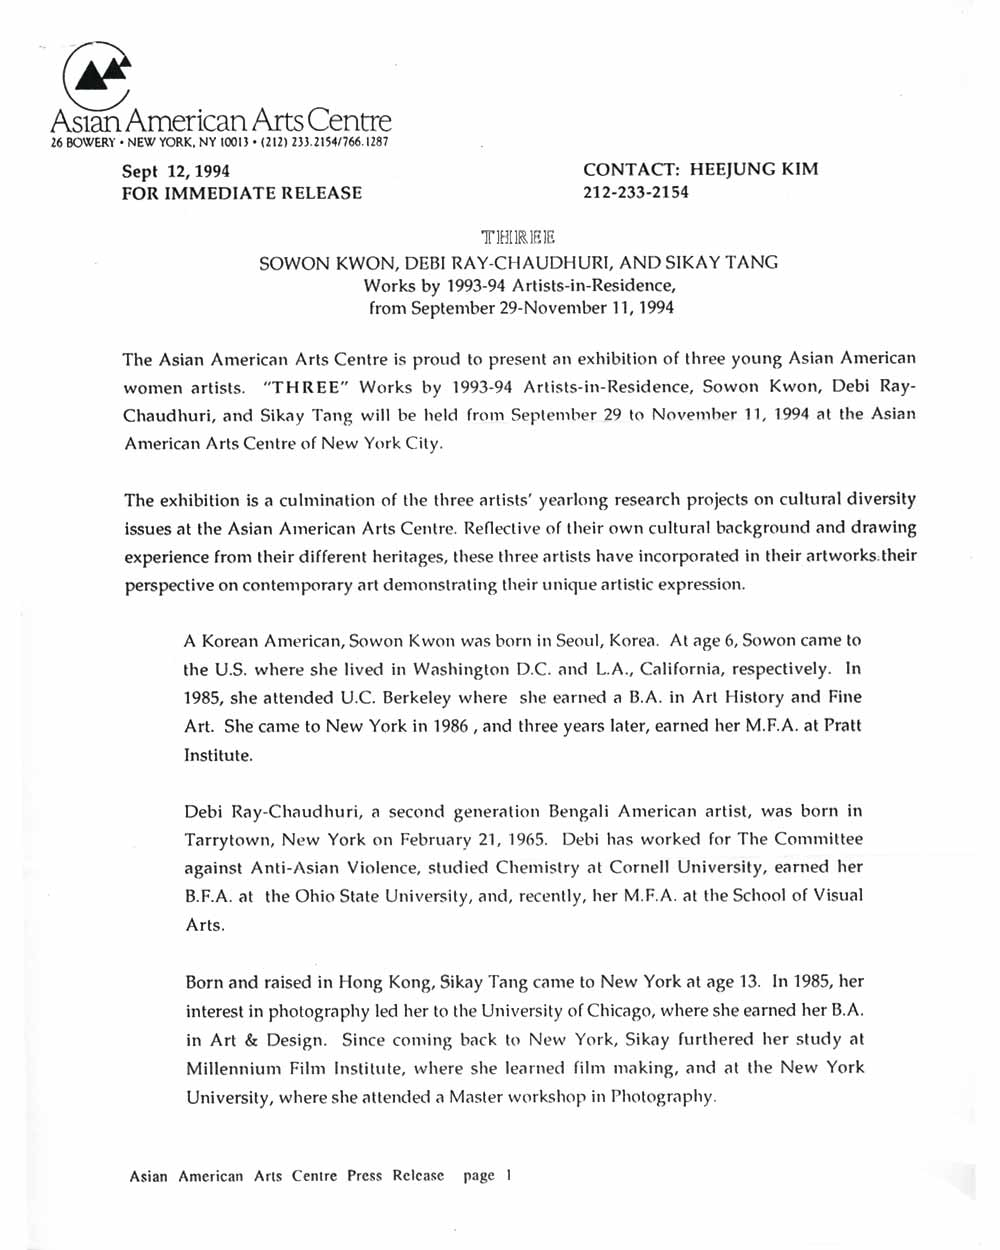 Debi Ray-Chaudhuri, Sowon Kwon, Sikay Tan, press release, pg 1